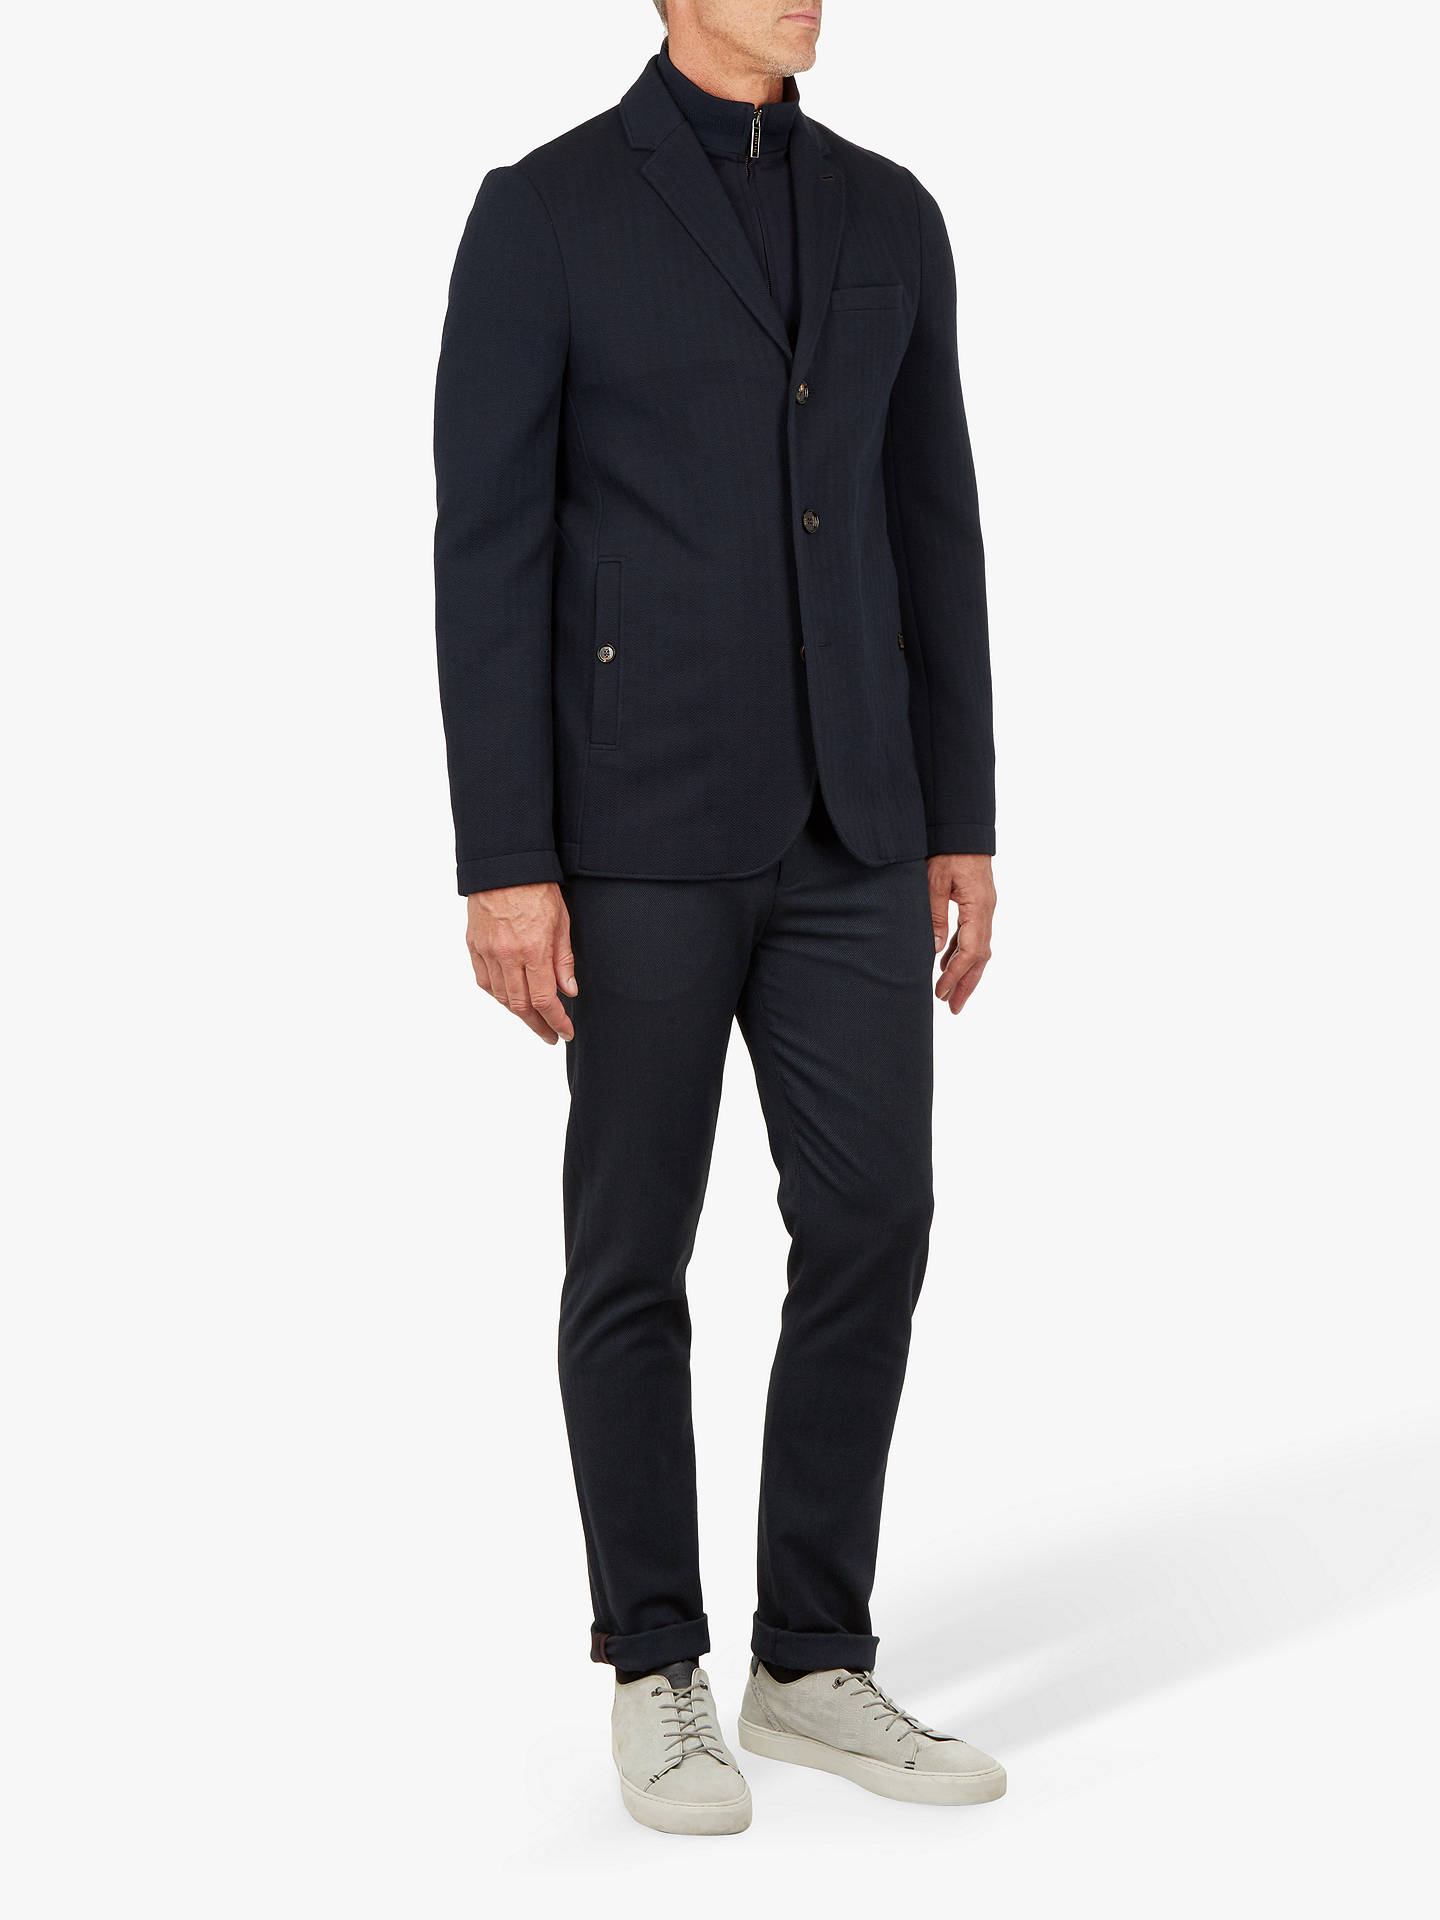 BuyTed Baker T for Tall Toastie Herringbone Jersey Jacket, Navy, XL Online at johnlewis.com